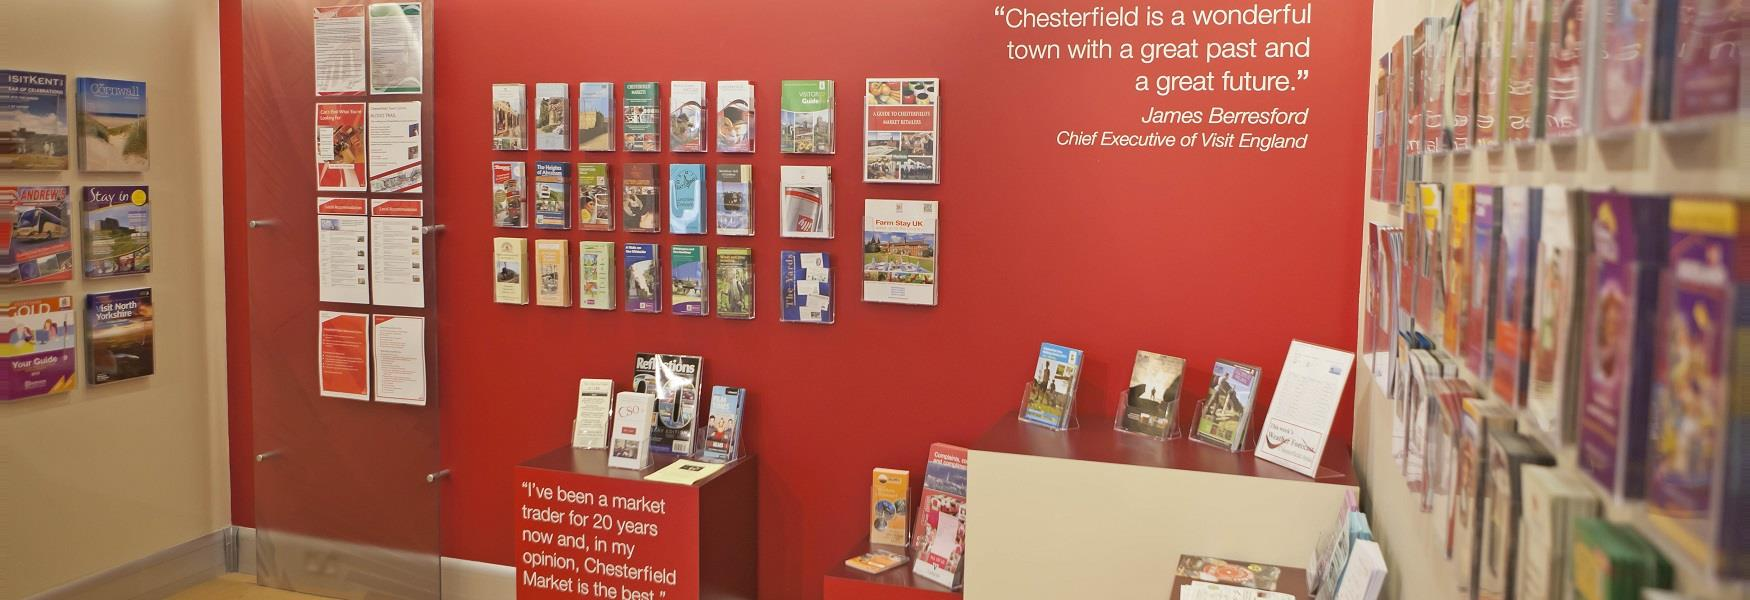 Inside Chesterfield Visitor Information Centre